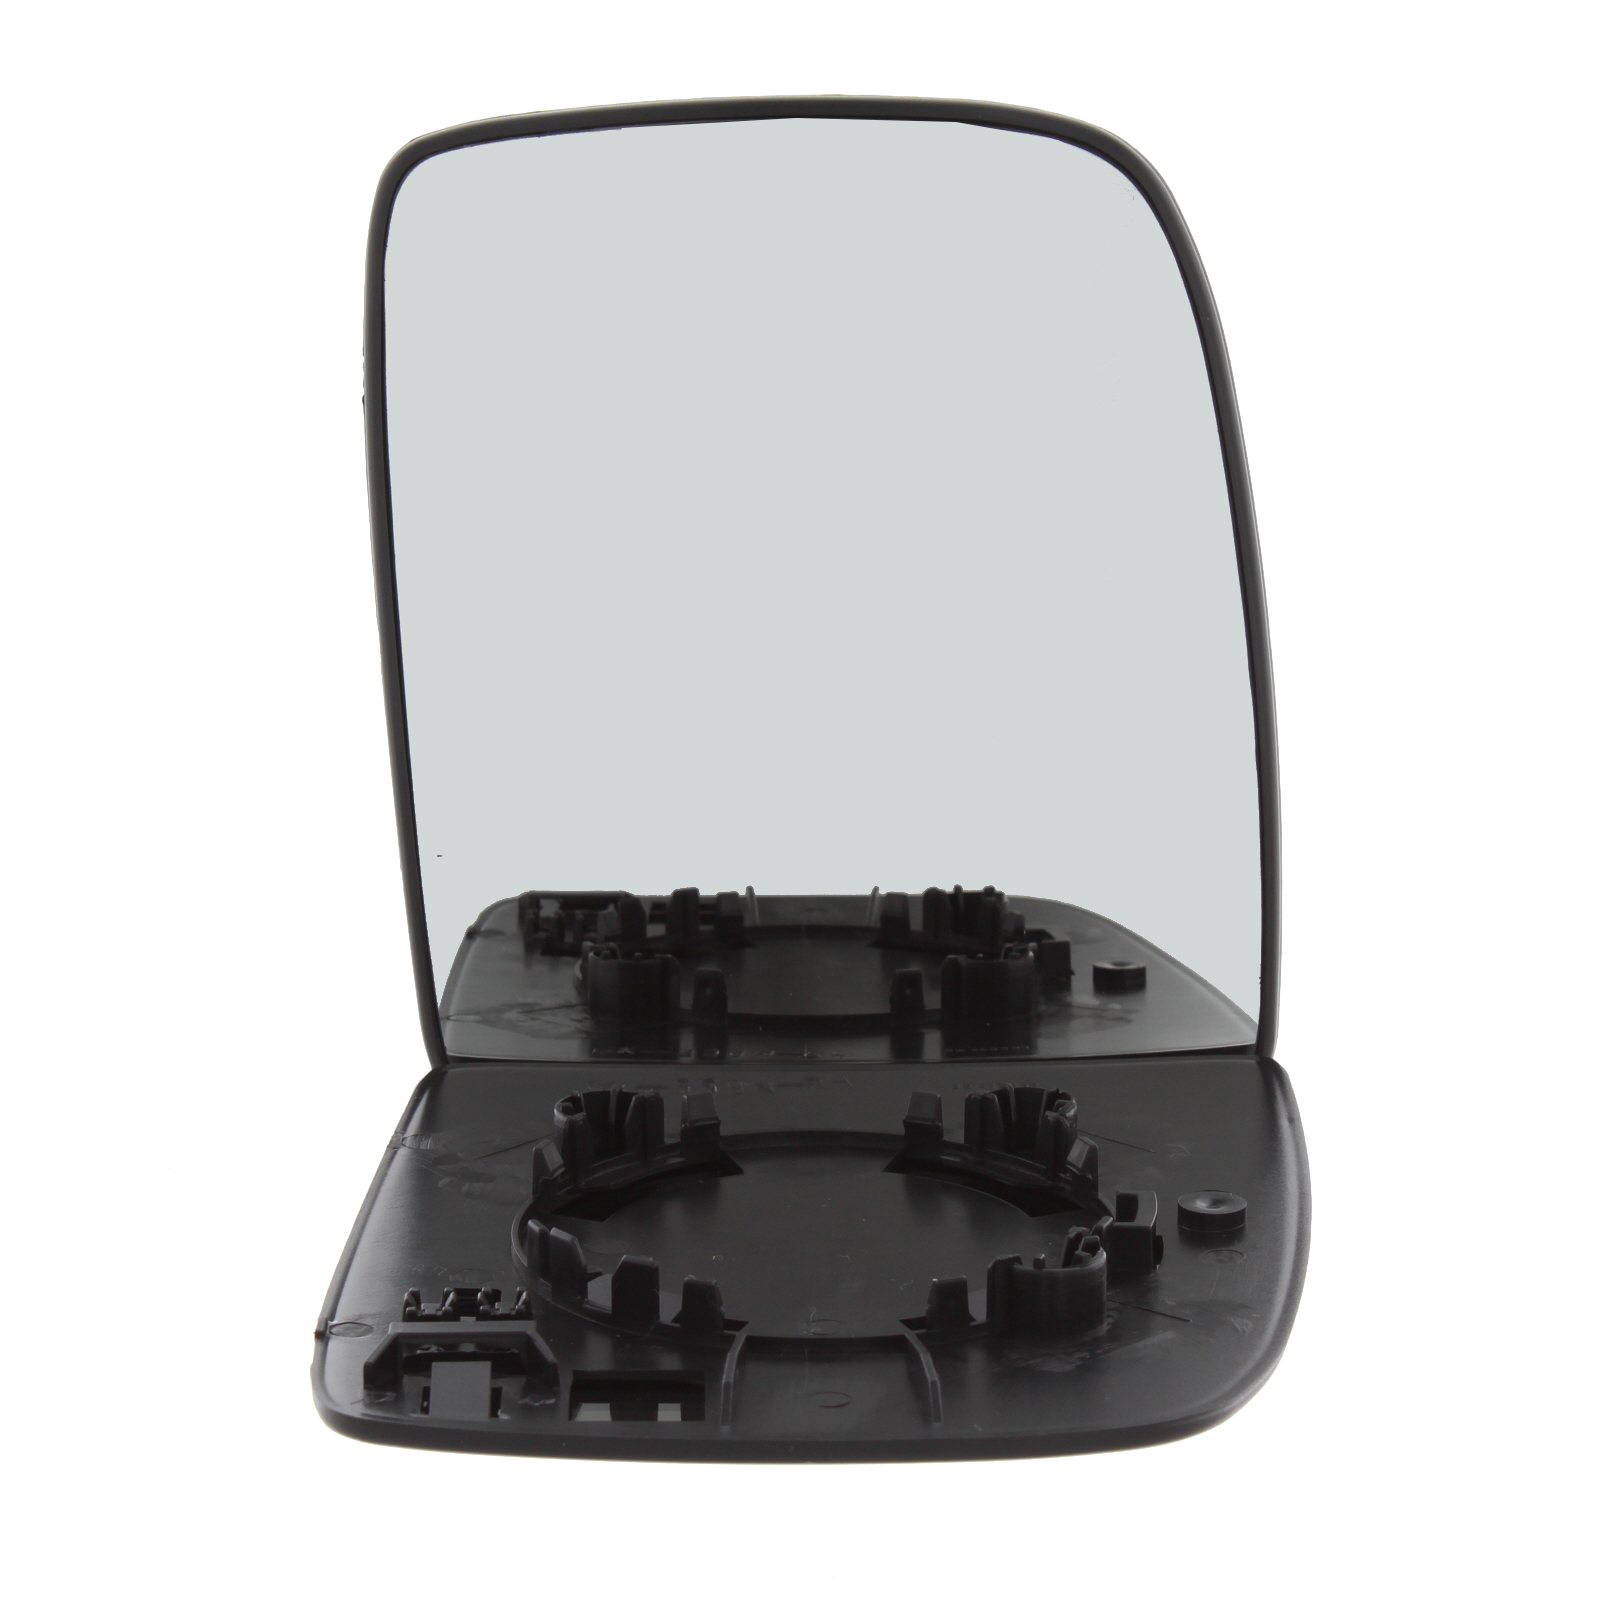 For PEUGEOT EXPERT Tepee 2007-2017 Right Upper Mirror Glass not Heated